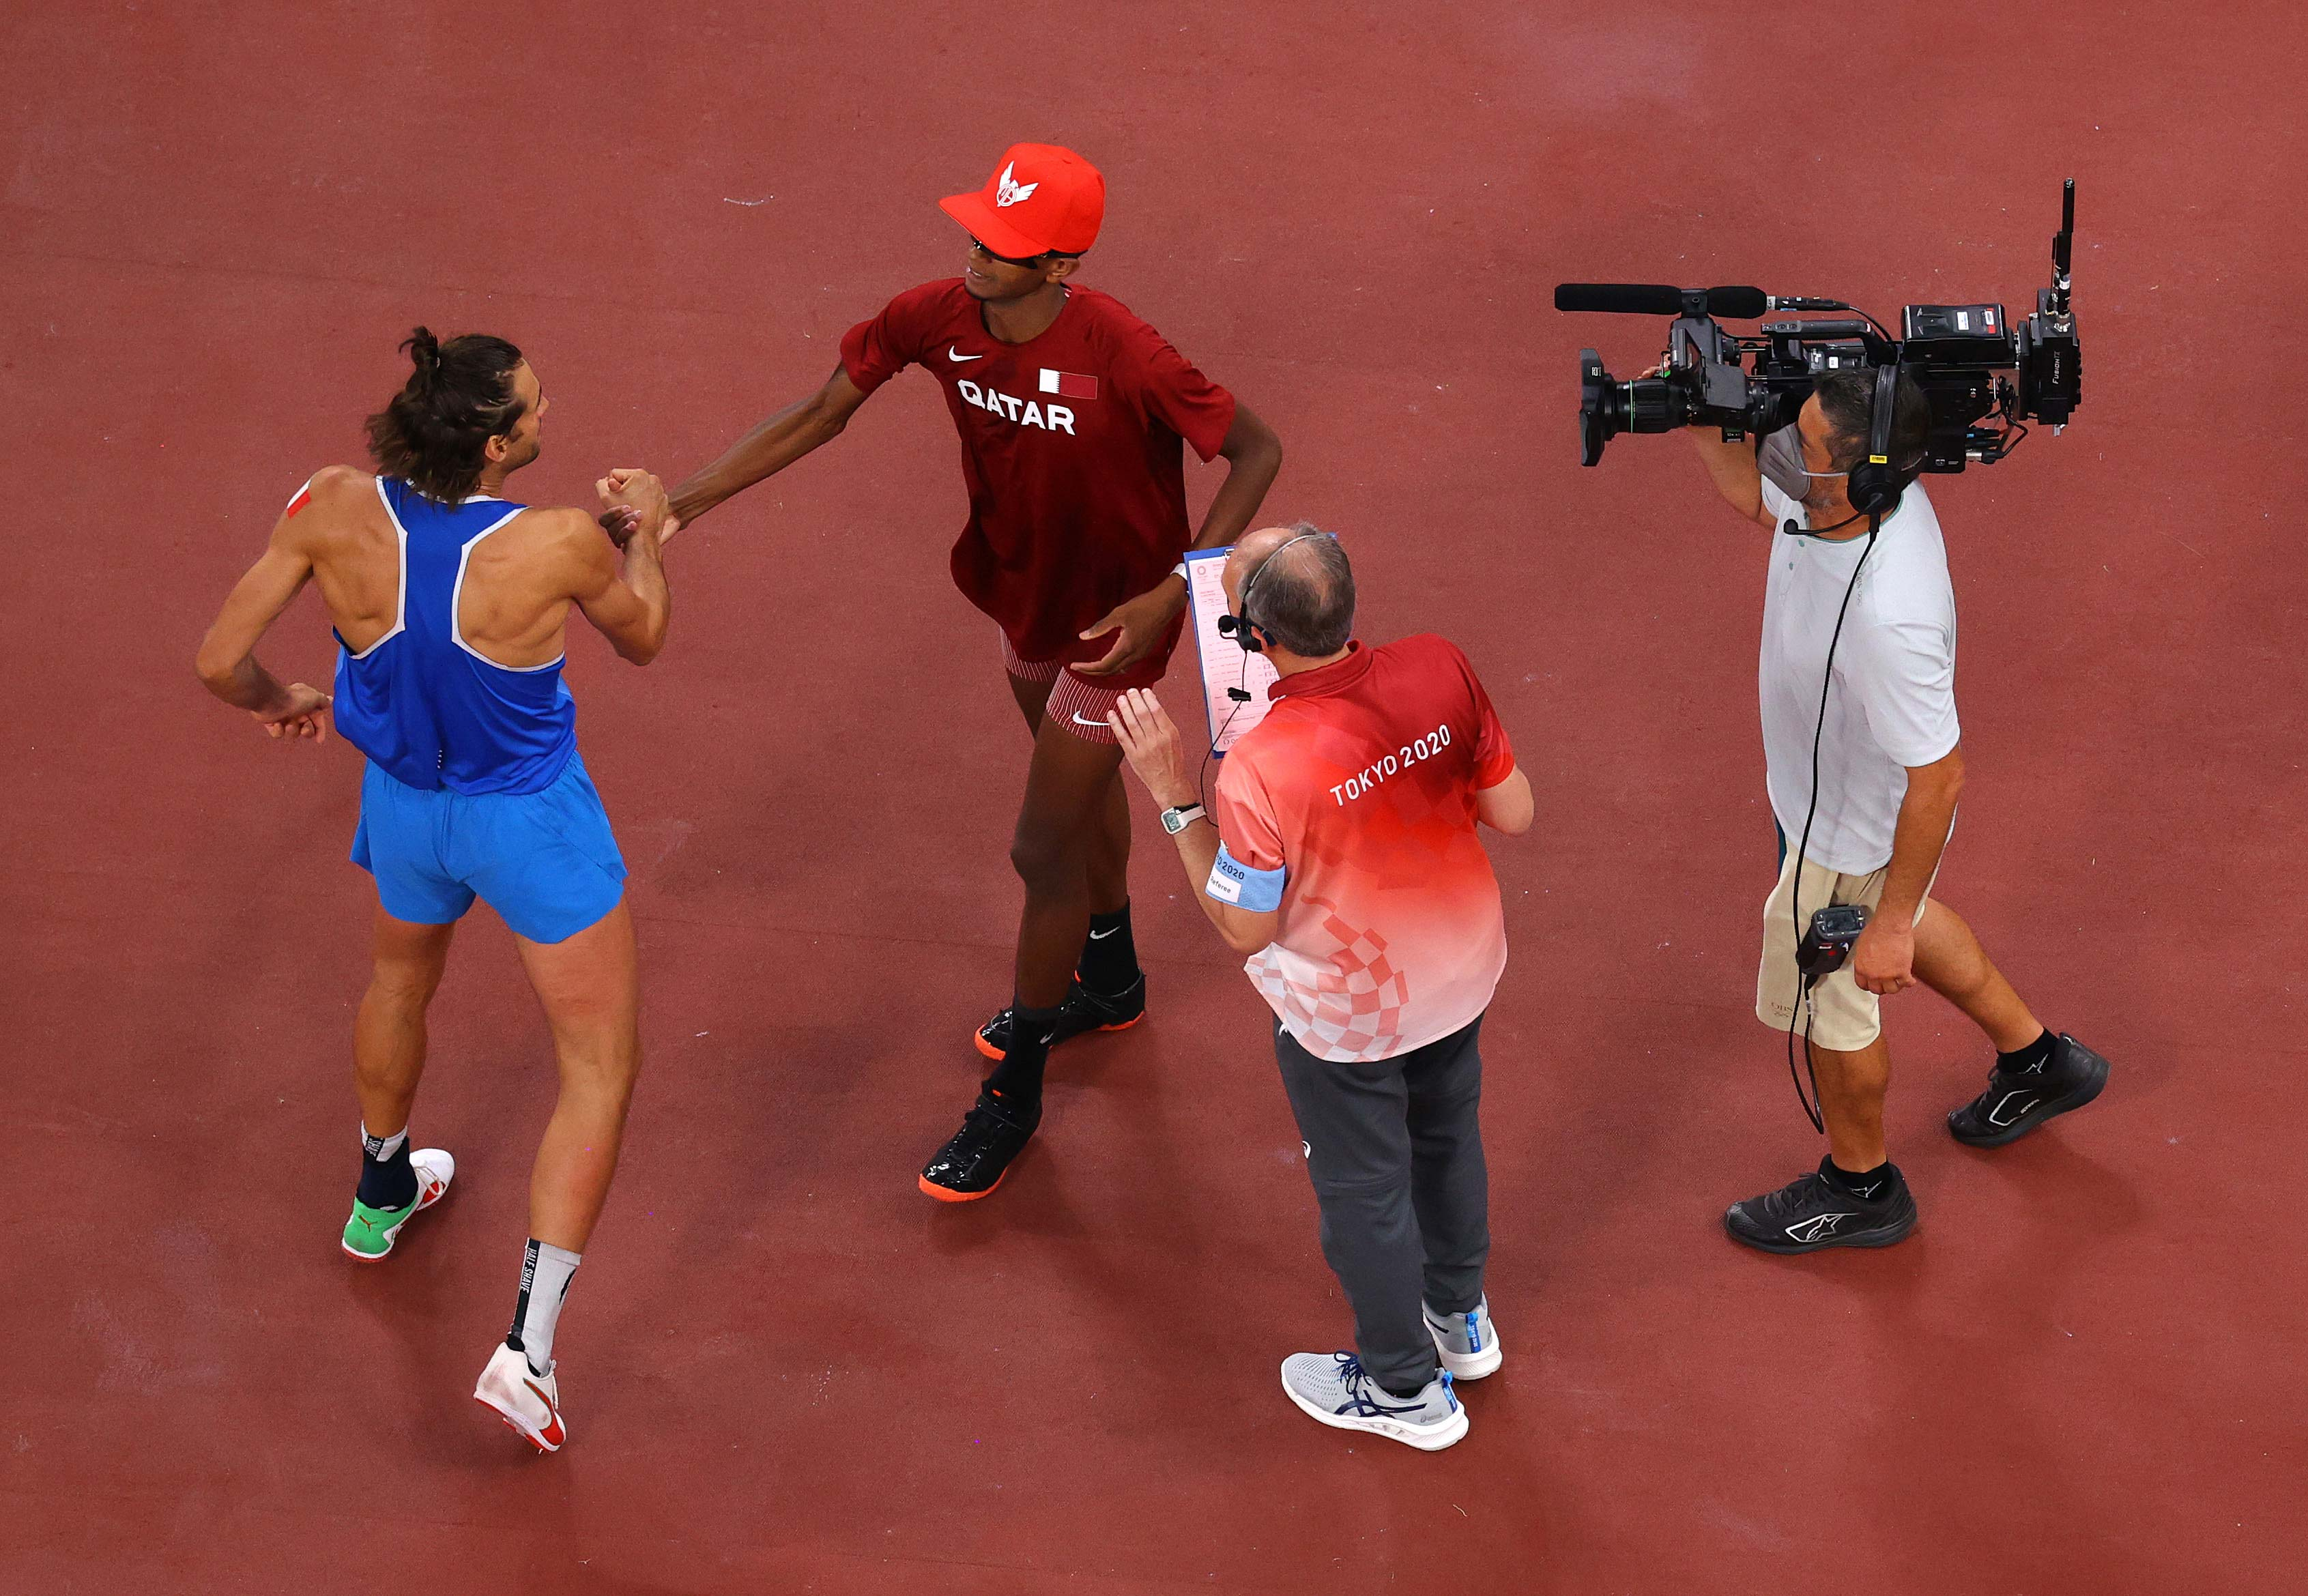 Italy's Gianmarco Tamberi and Qatar's Mutaz Essa Barshim react after winning the gold medal in the high jump on August 01.